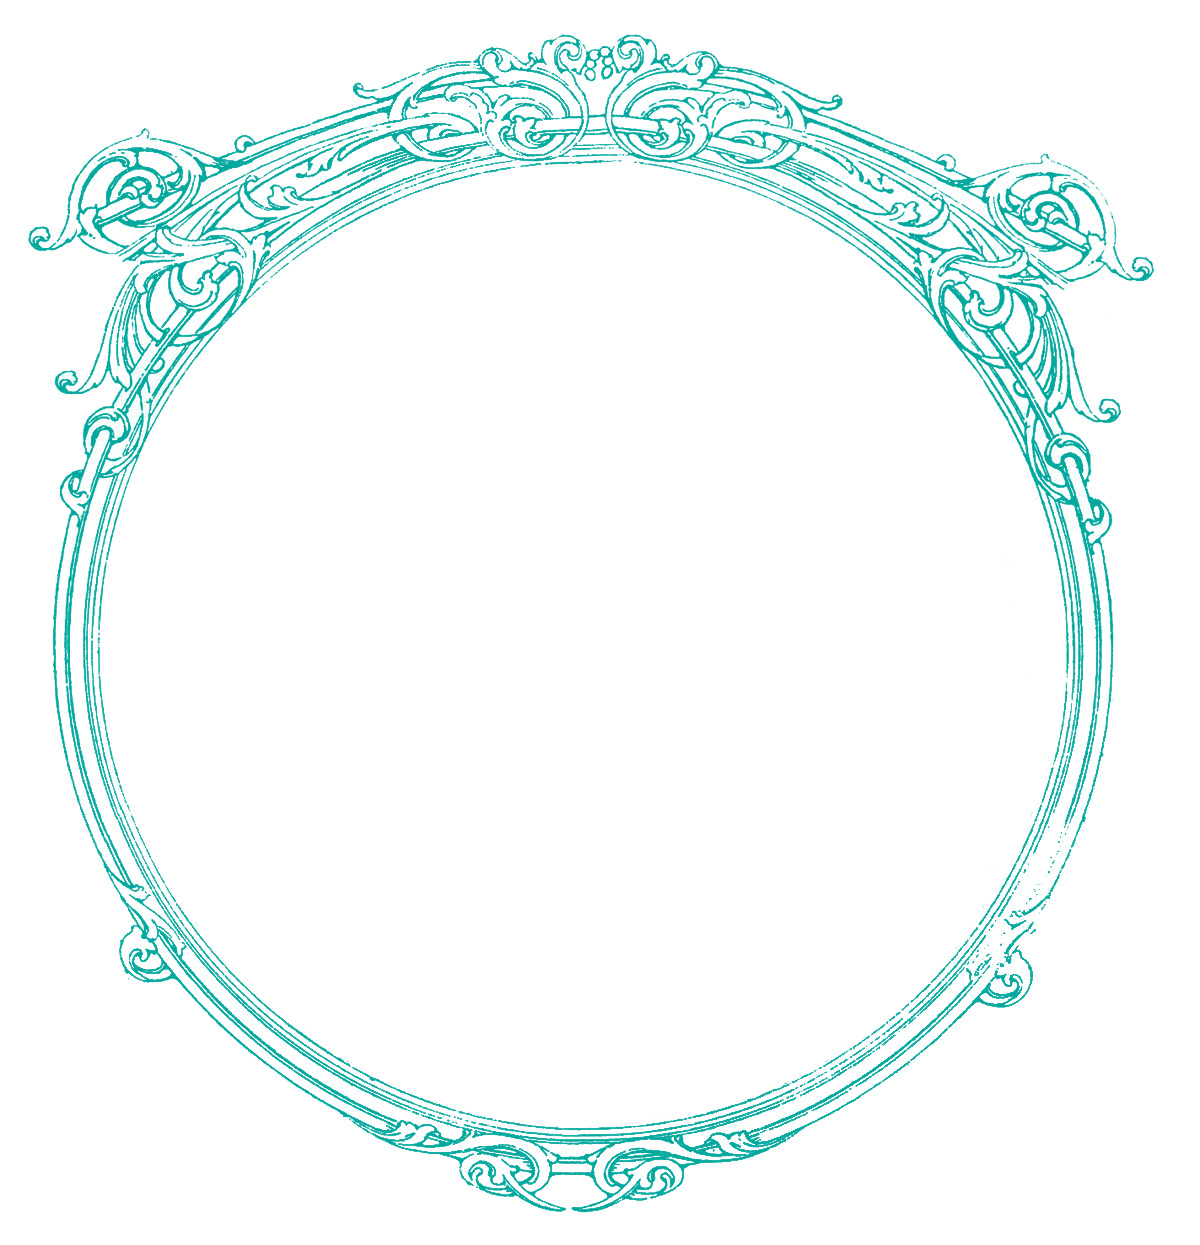 Vintage Images Round Ornate Frames The Graphics Fairy